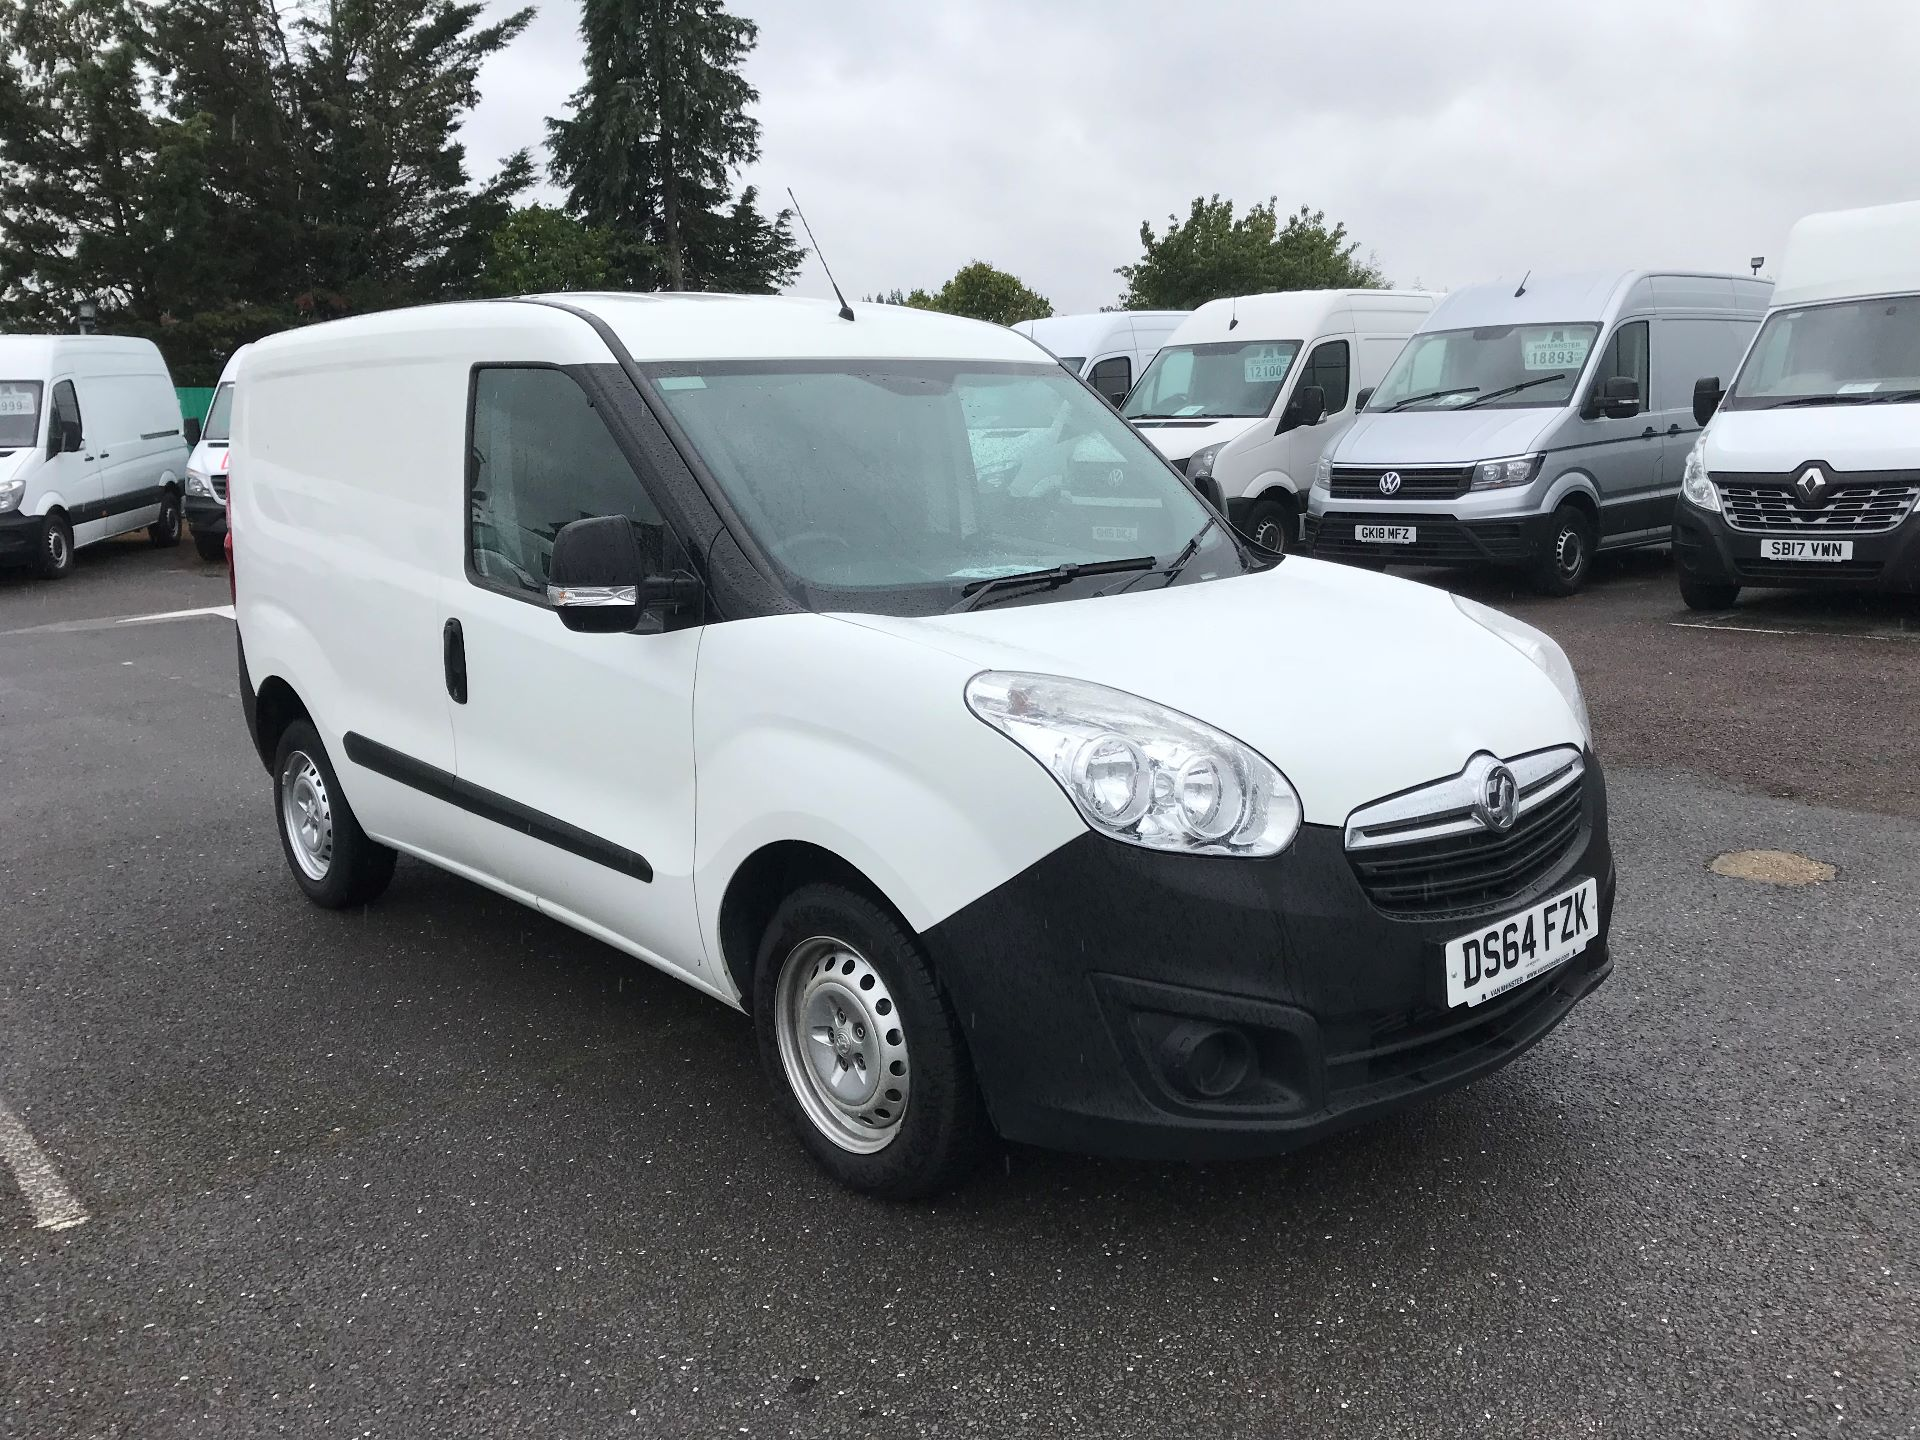 2015 Vauxhall Combo  L1 H1 2000 1.3 16V  EURO 5 (DS64FZK)